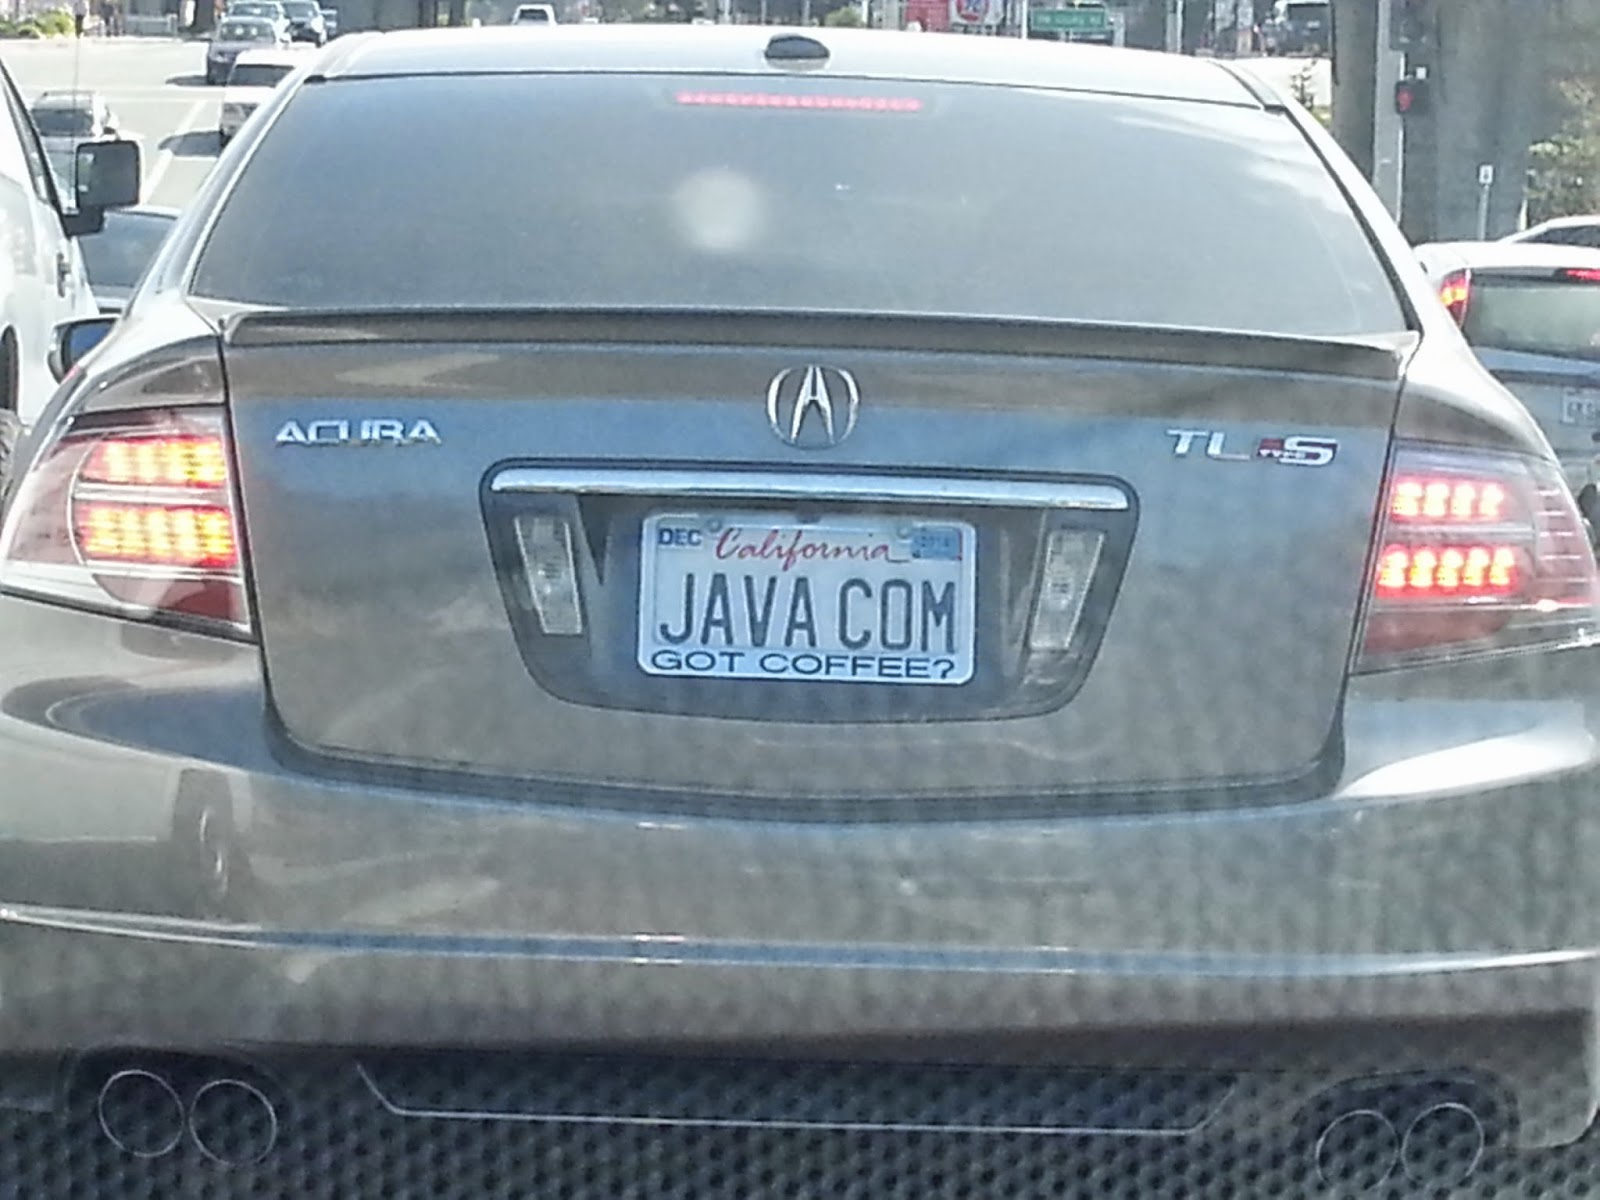 Fountainhead: Only in Silicon Valley: License Plate Sightings in the ...